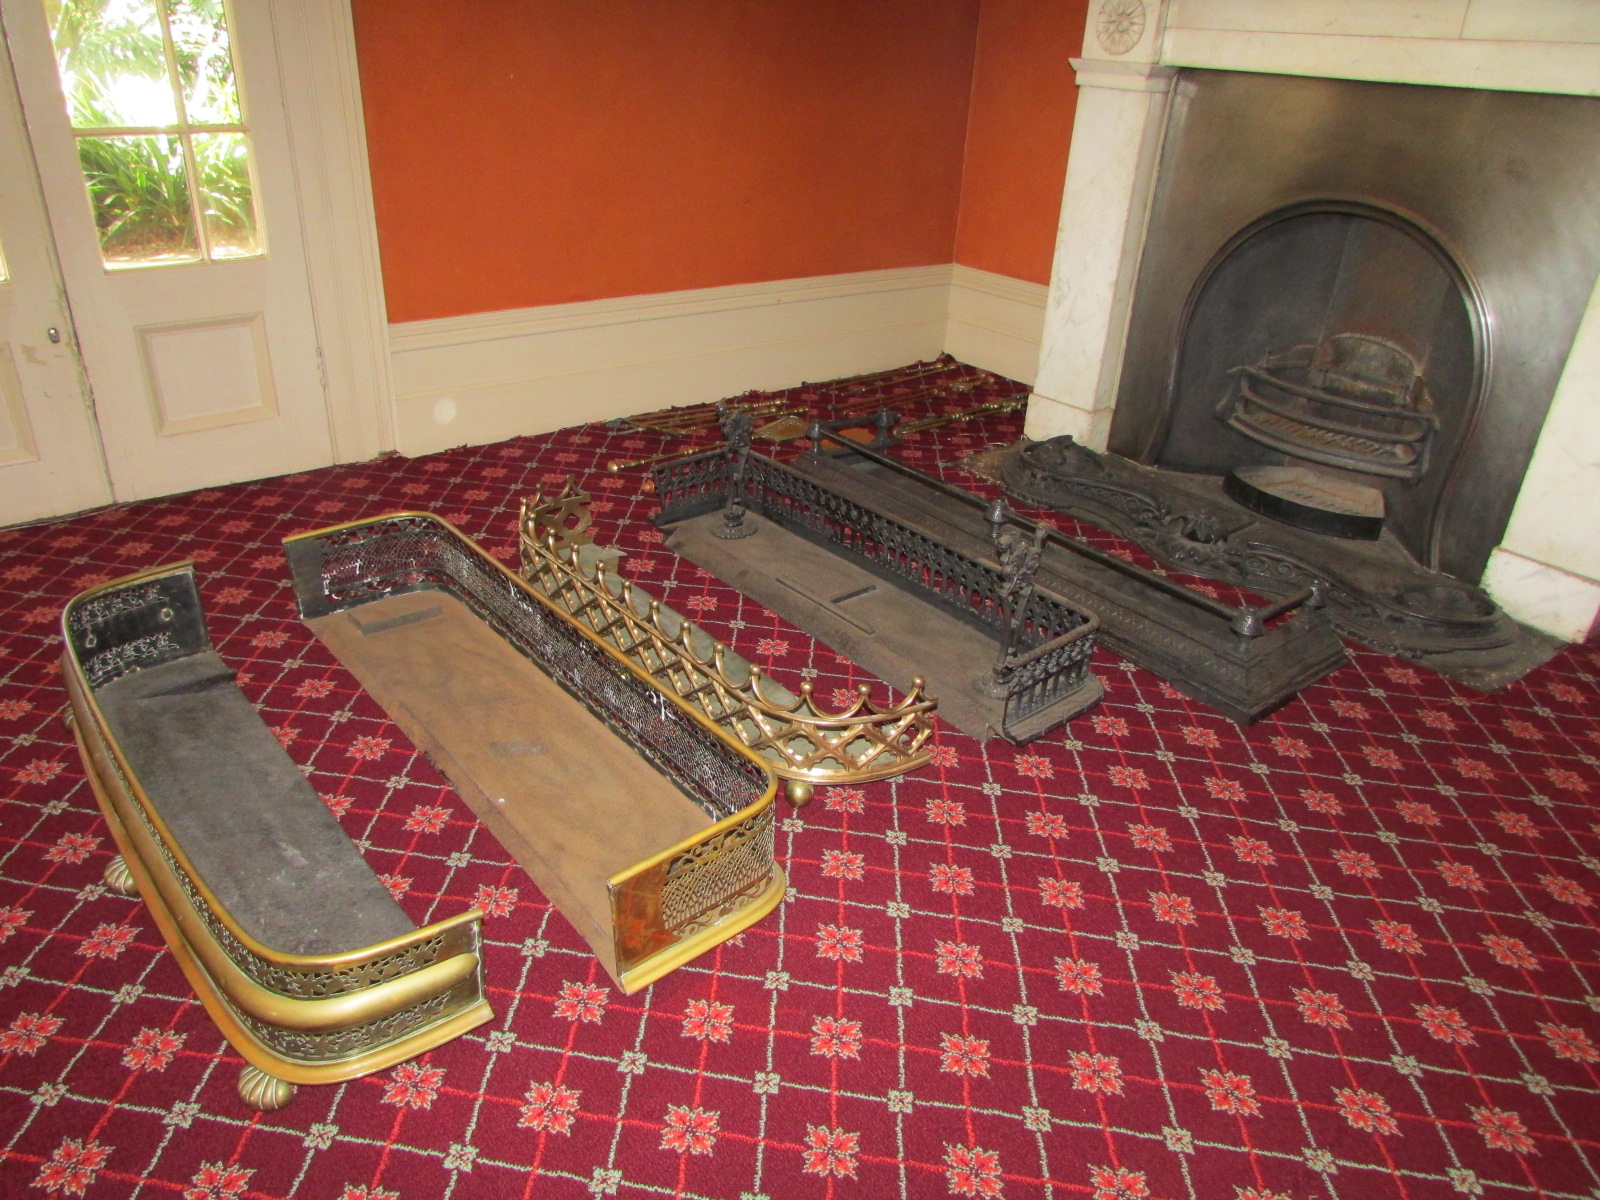 5 metal fenders of varying shapes on a red patterned carpet in front of a fireplace.